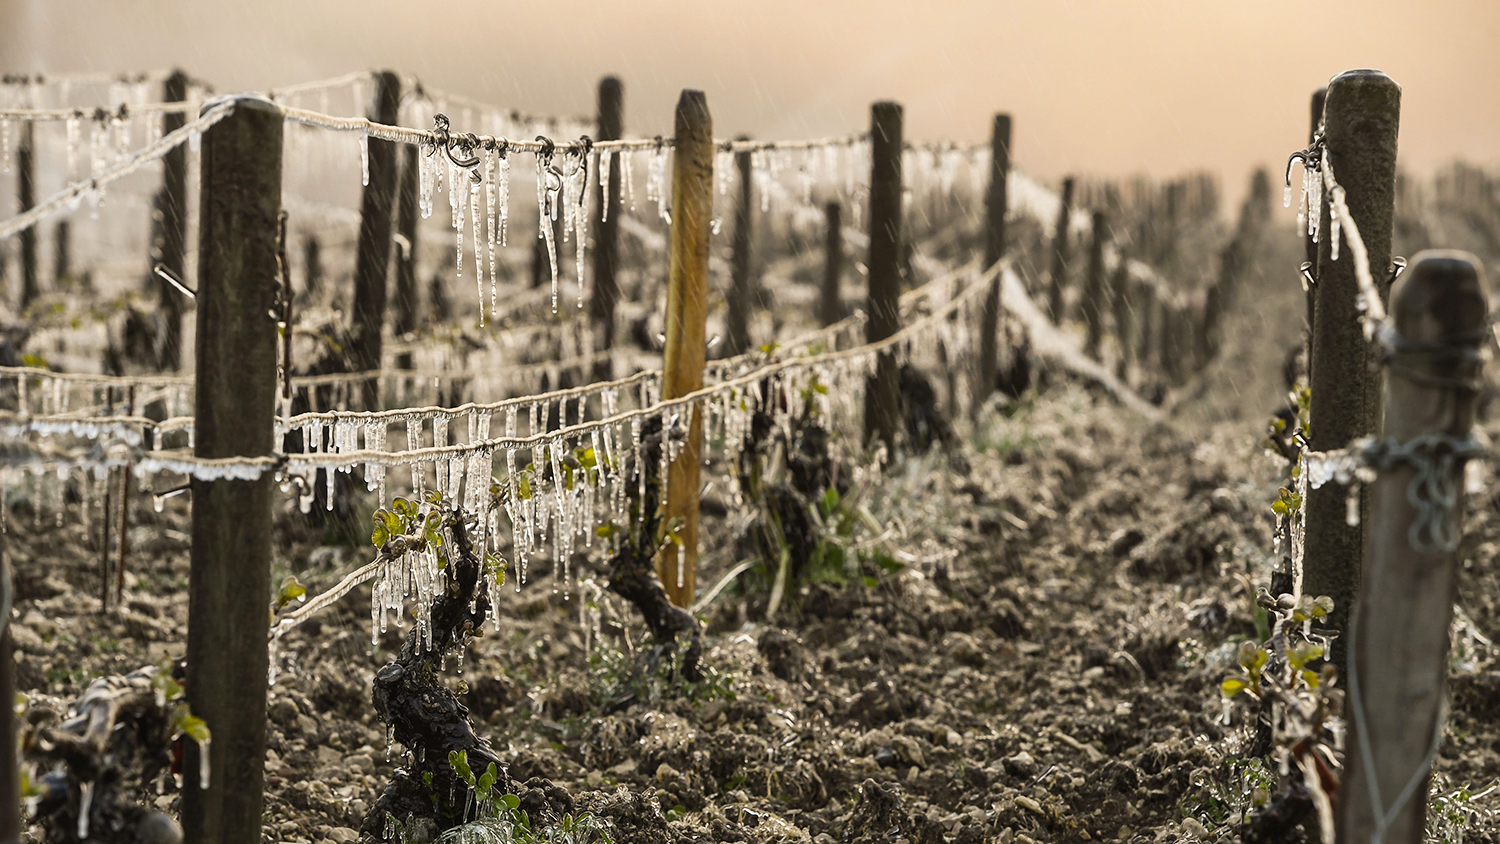 frost on vines ruining wine production